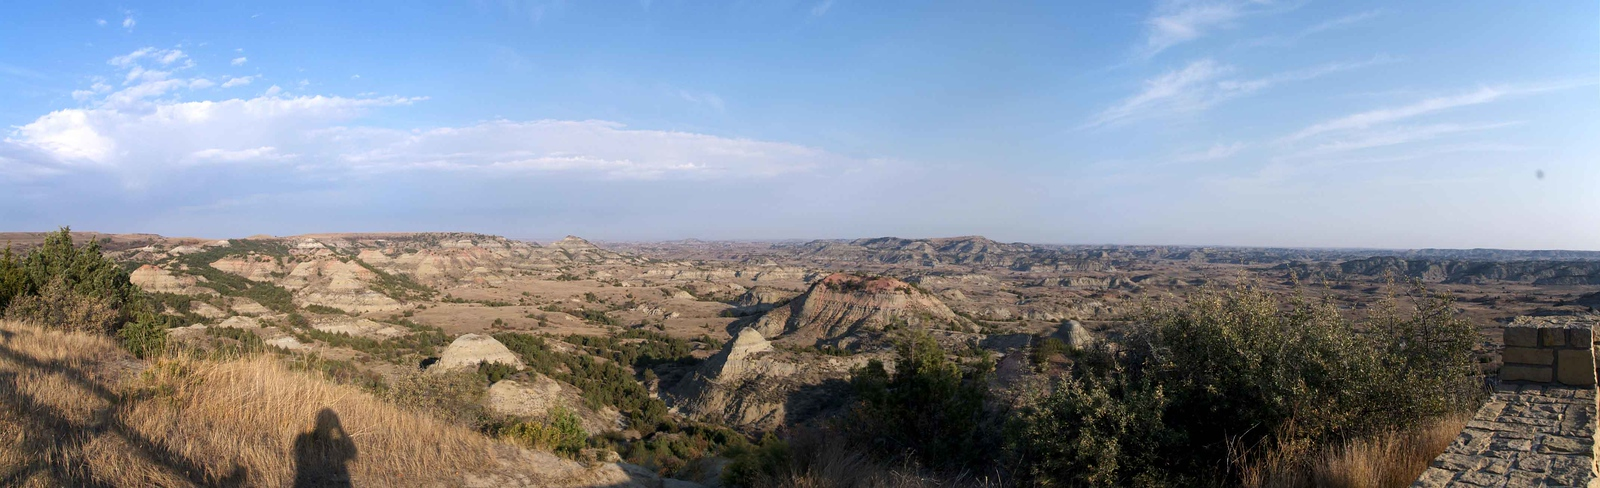 T Roosevelt Badlands